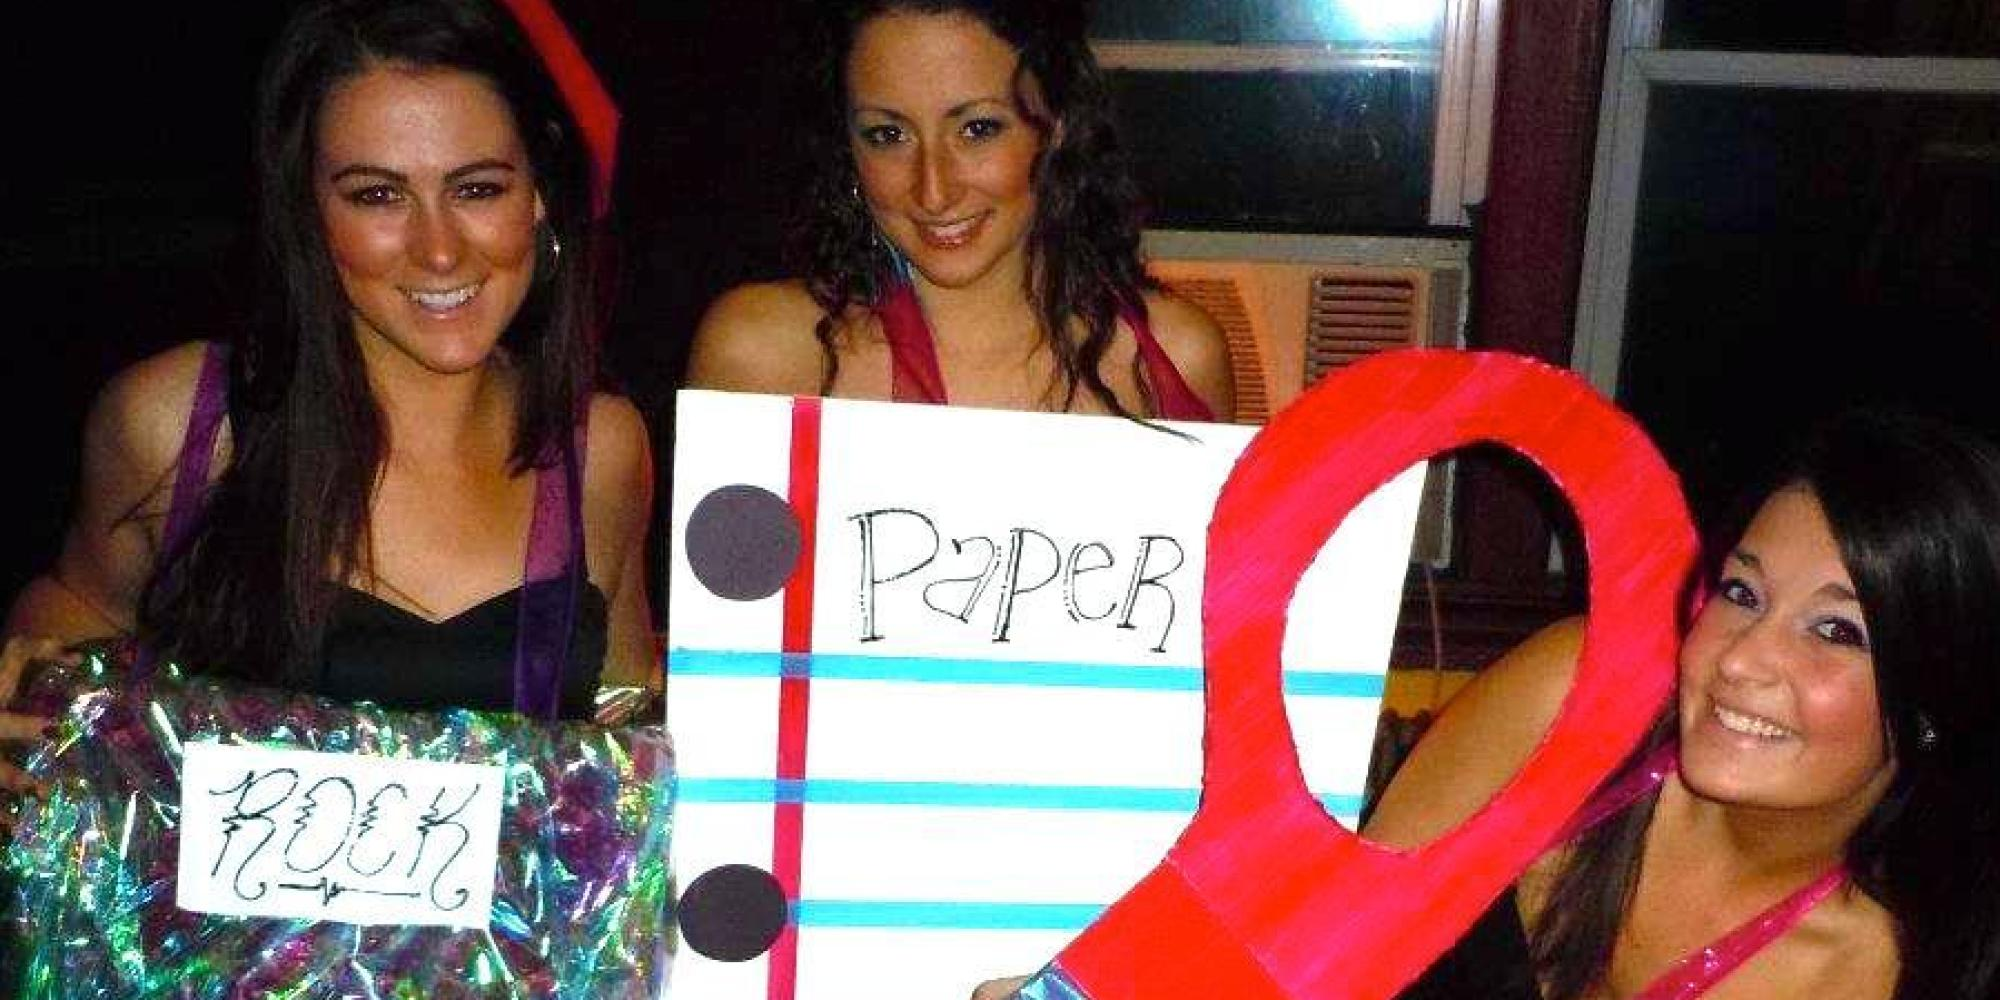 halloween costumes for women 2013 ideas far better than sexy nurse huffpost - Best Halloween Costumes For 3 People